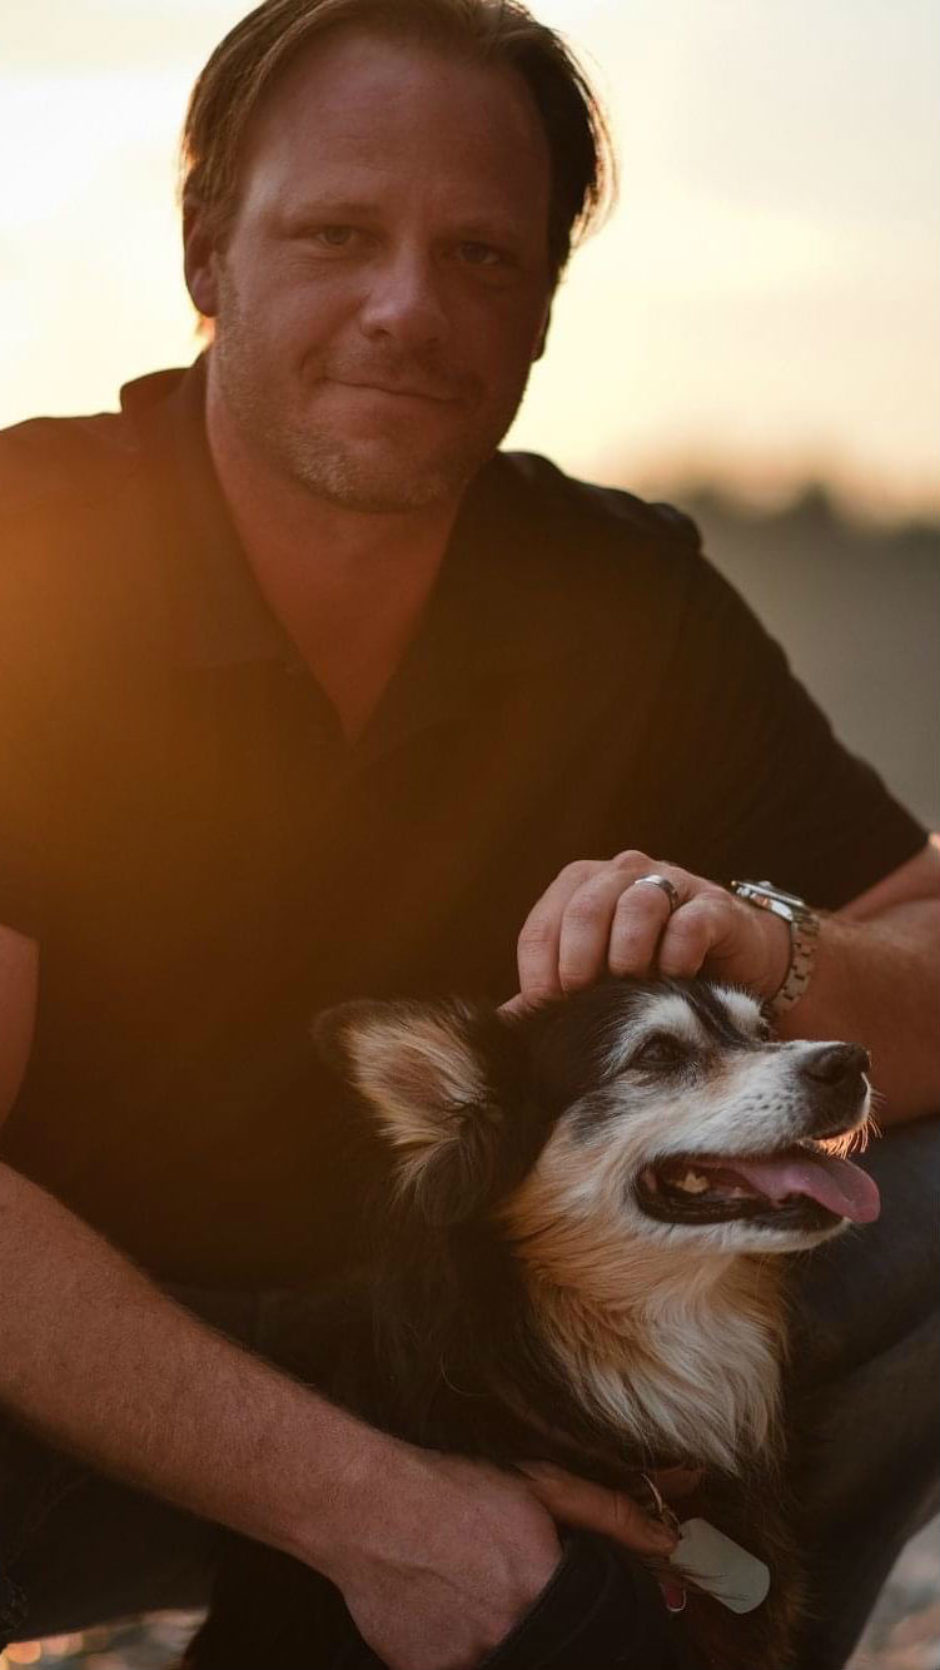 Brandon Niwa and his dog, Missy, are seen in this photo. Brandon died by suicide in May 2020, the first in a series of deaths by suicide among a group of similarly aged men in Medicine Hat that happened throughout the summer.